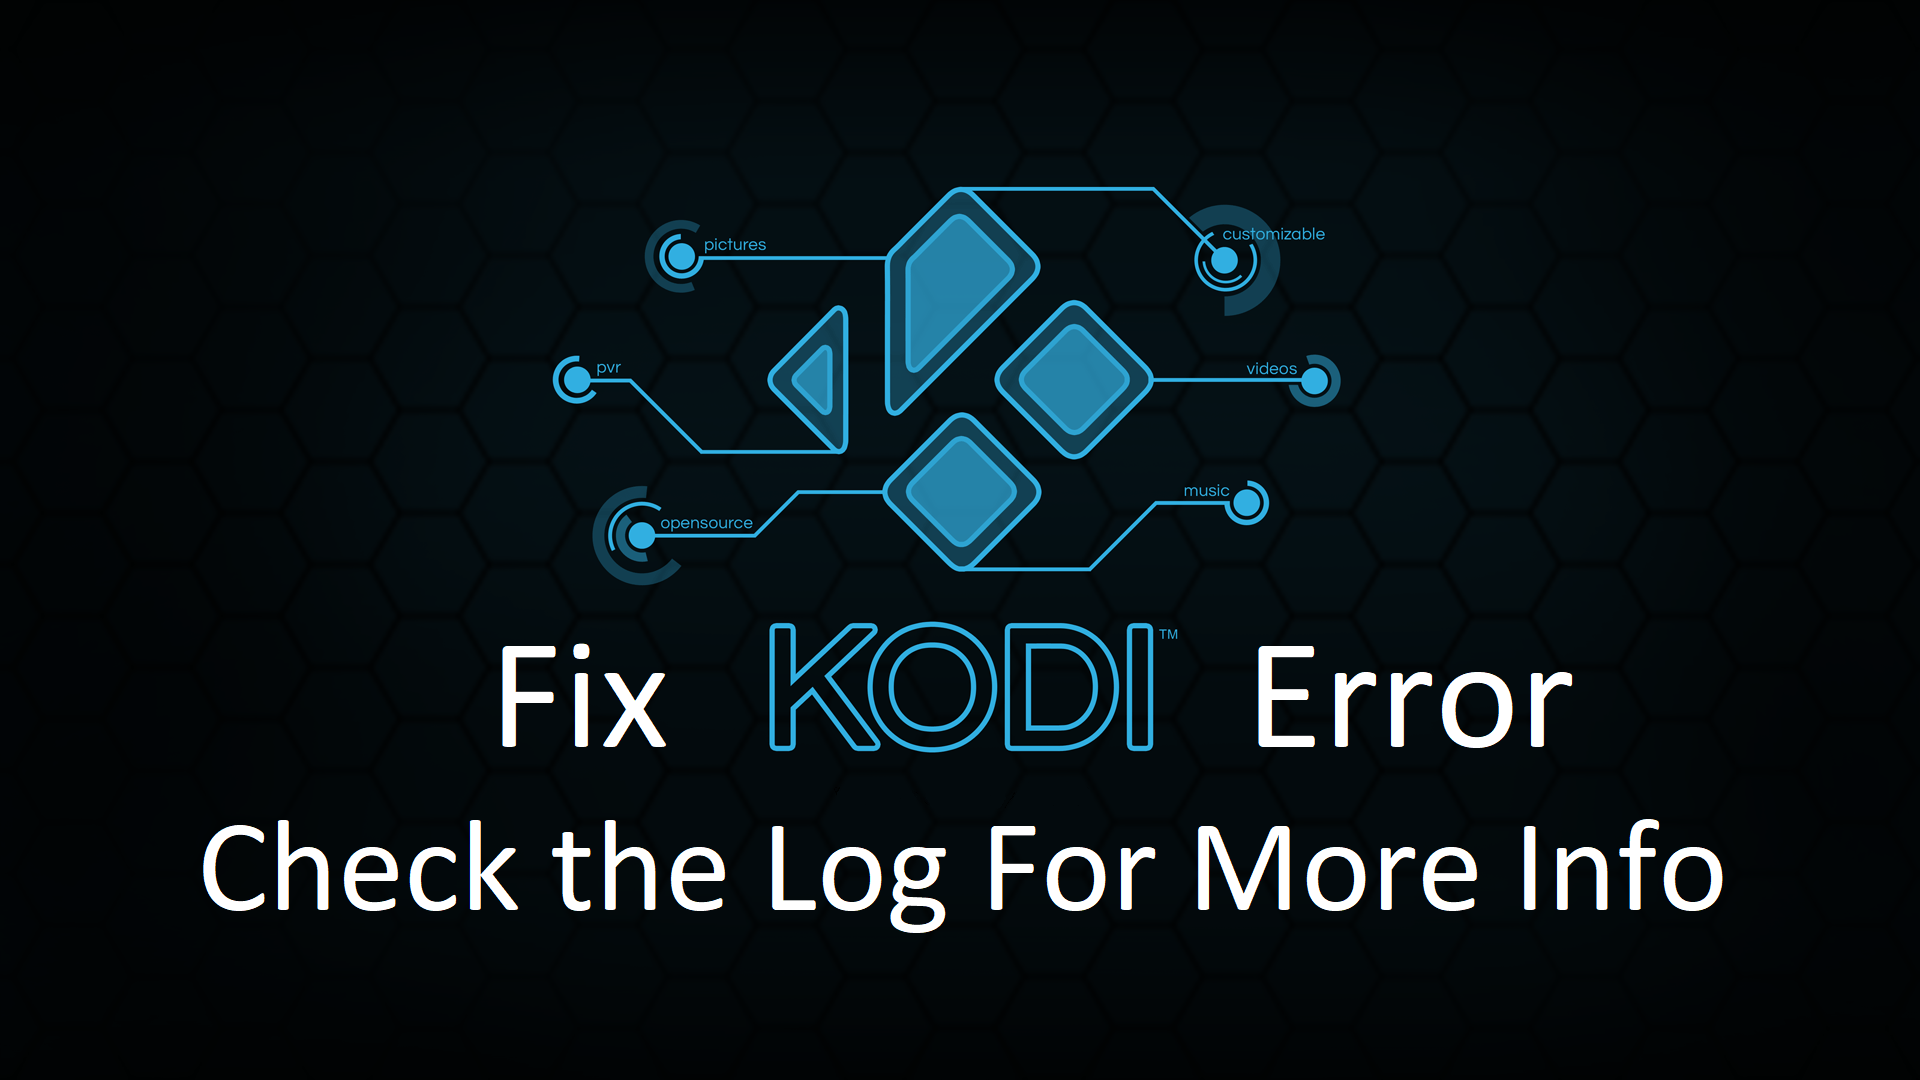 Fix Check The Log For More Information Kodi Error